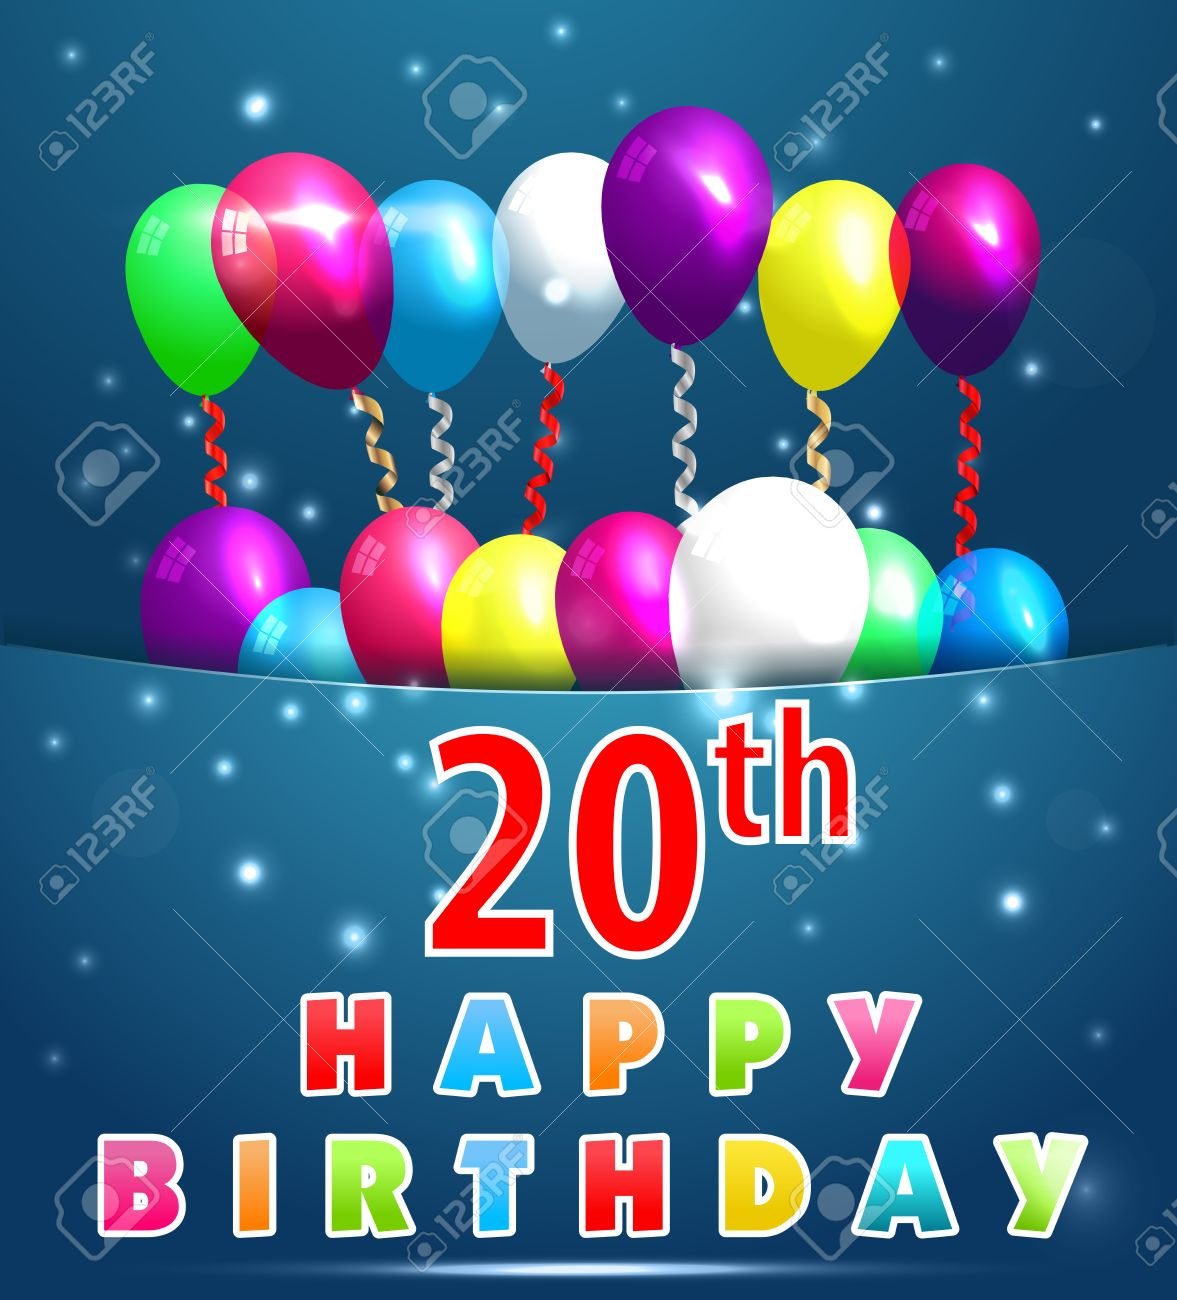 20 year happy birthday card with balloons and ribbons 20th 20 year happy birthday card with balloons and ribbons 20th birthday stock vector 36932752 bookmarktalkfo Choice Image